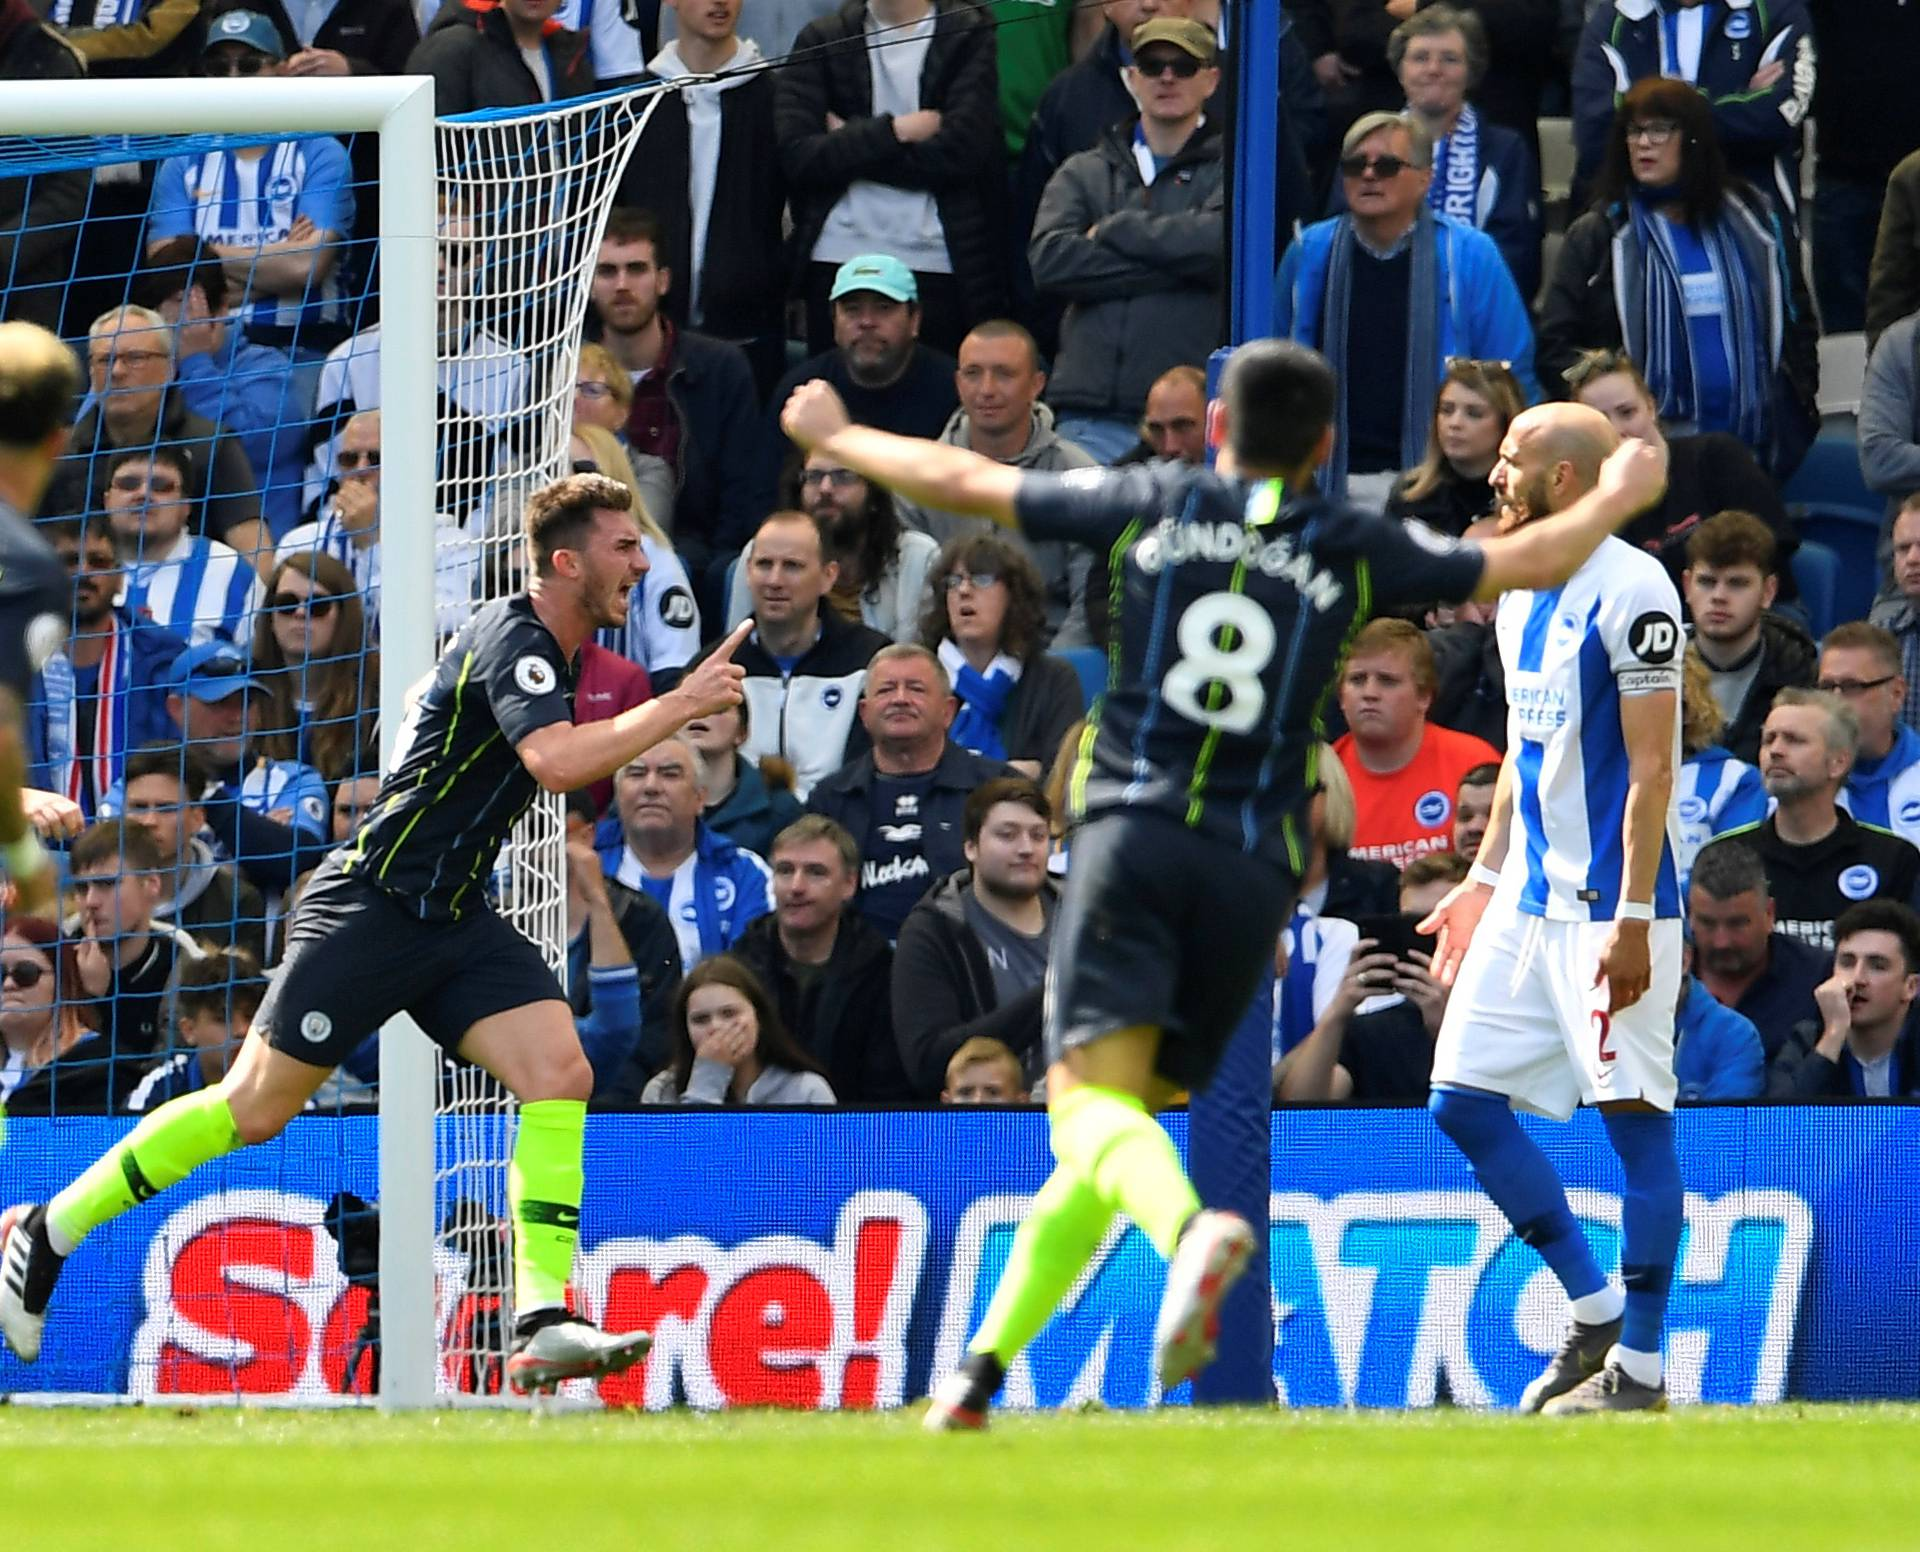 Premier League - Brighton & Hove Albion v Manchester City